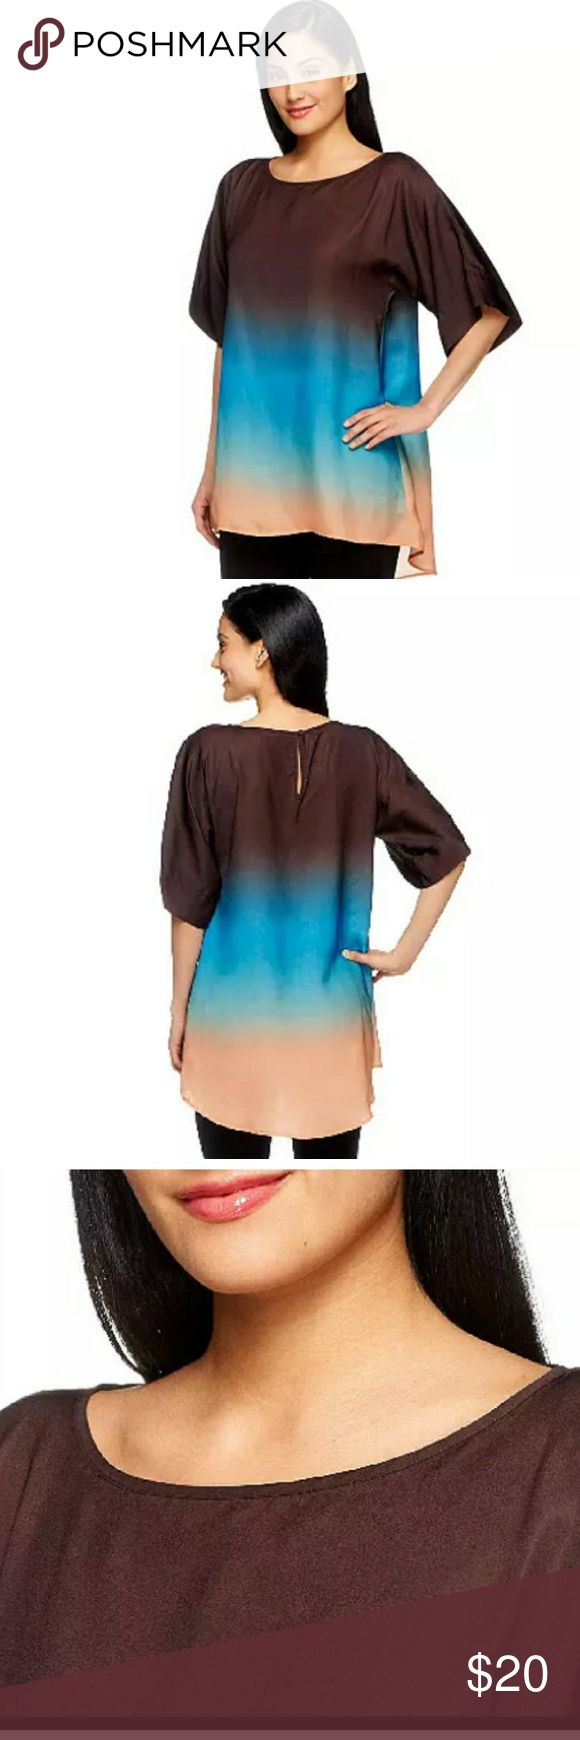 New G.I.L.I. Got It Love ItElbow Sleeve Dip Dye G.I.L.I. Got It Love It  Elbow Sleeve Uneven Hem Dip Dye/Tie Dye Blouse Featured on QVC Size Small  Excellent new condition. Includes extra button, no flaws.   Kimono style, uneven hemline, button-and-loop back neck closure, scoop neckline, dip-dye design.Imported.    Measurements:   Chest(armpit to armpit) :22in  Length(shoulder to bottom hem) :27in  Sleeve: 14.5in G.I.L.I. Got It Love It Tops Blouses